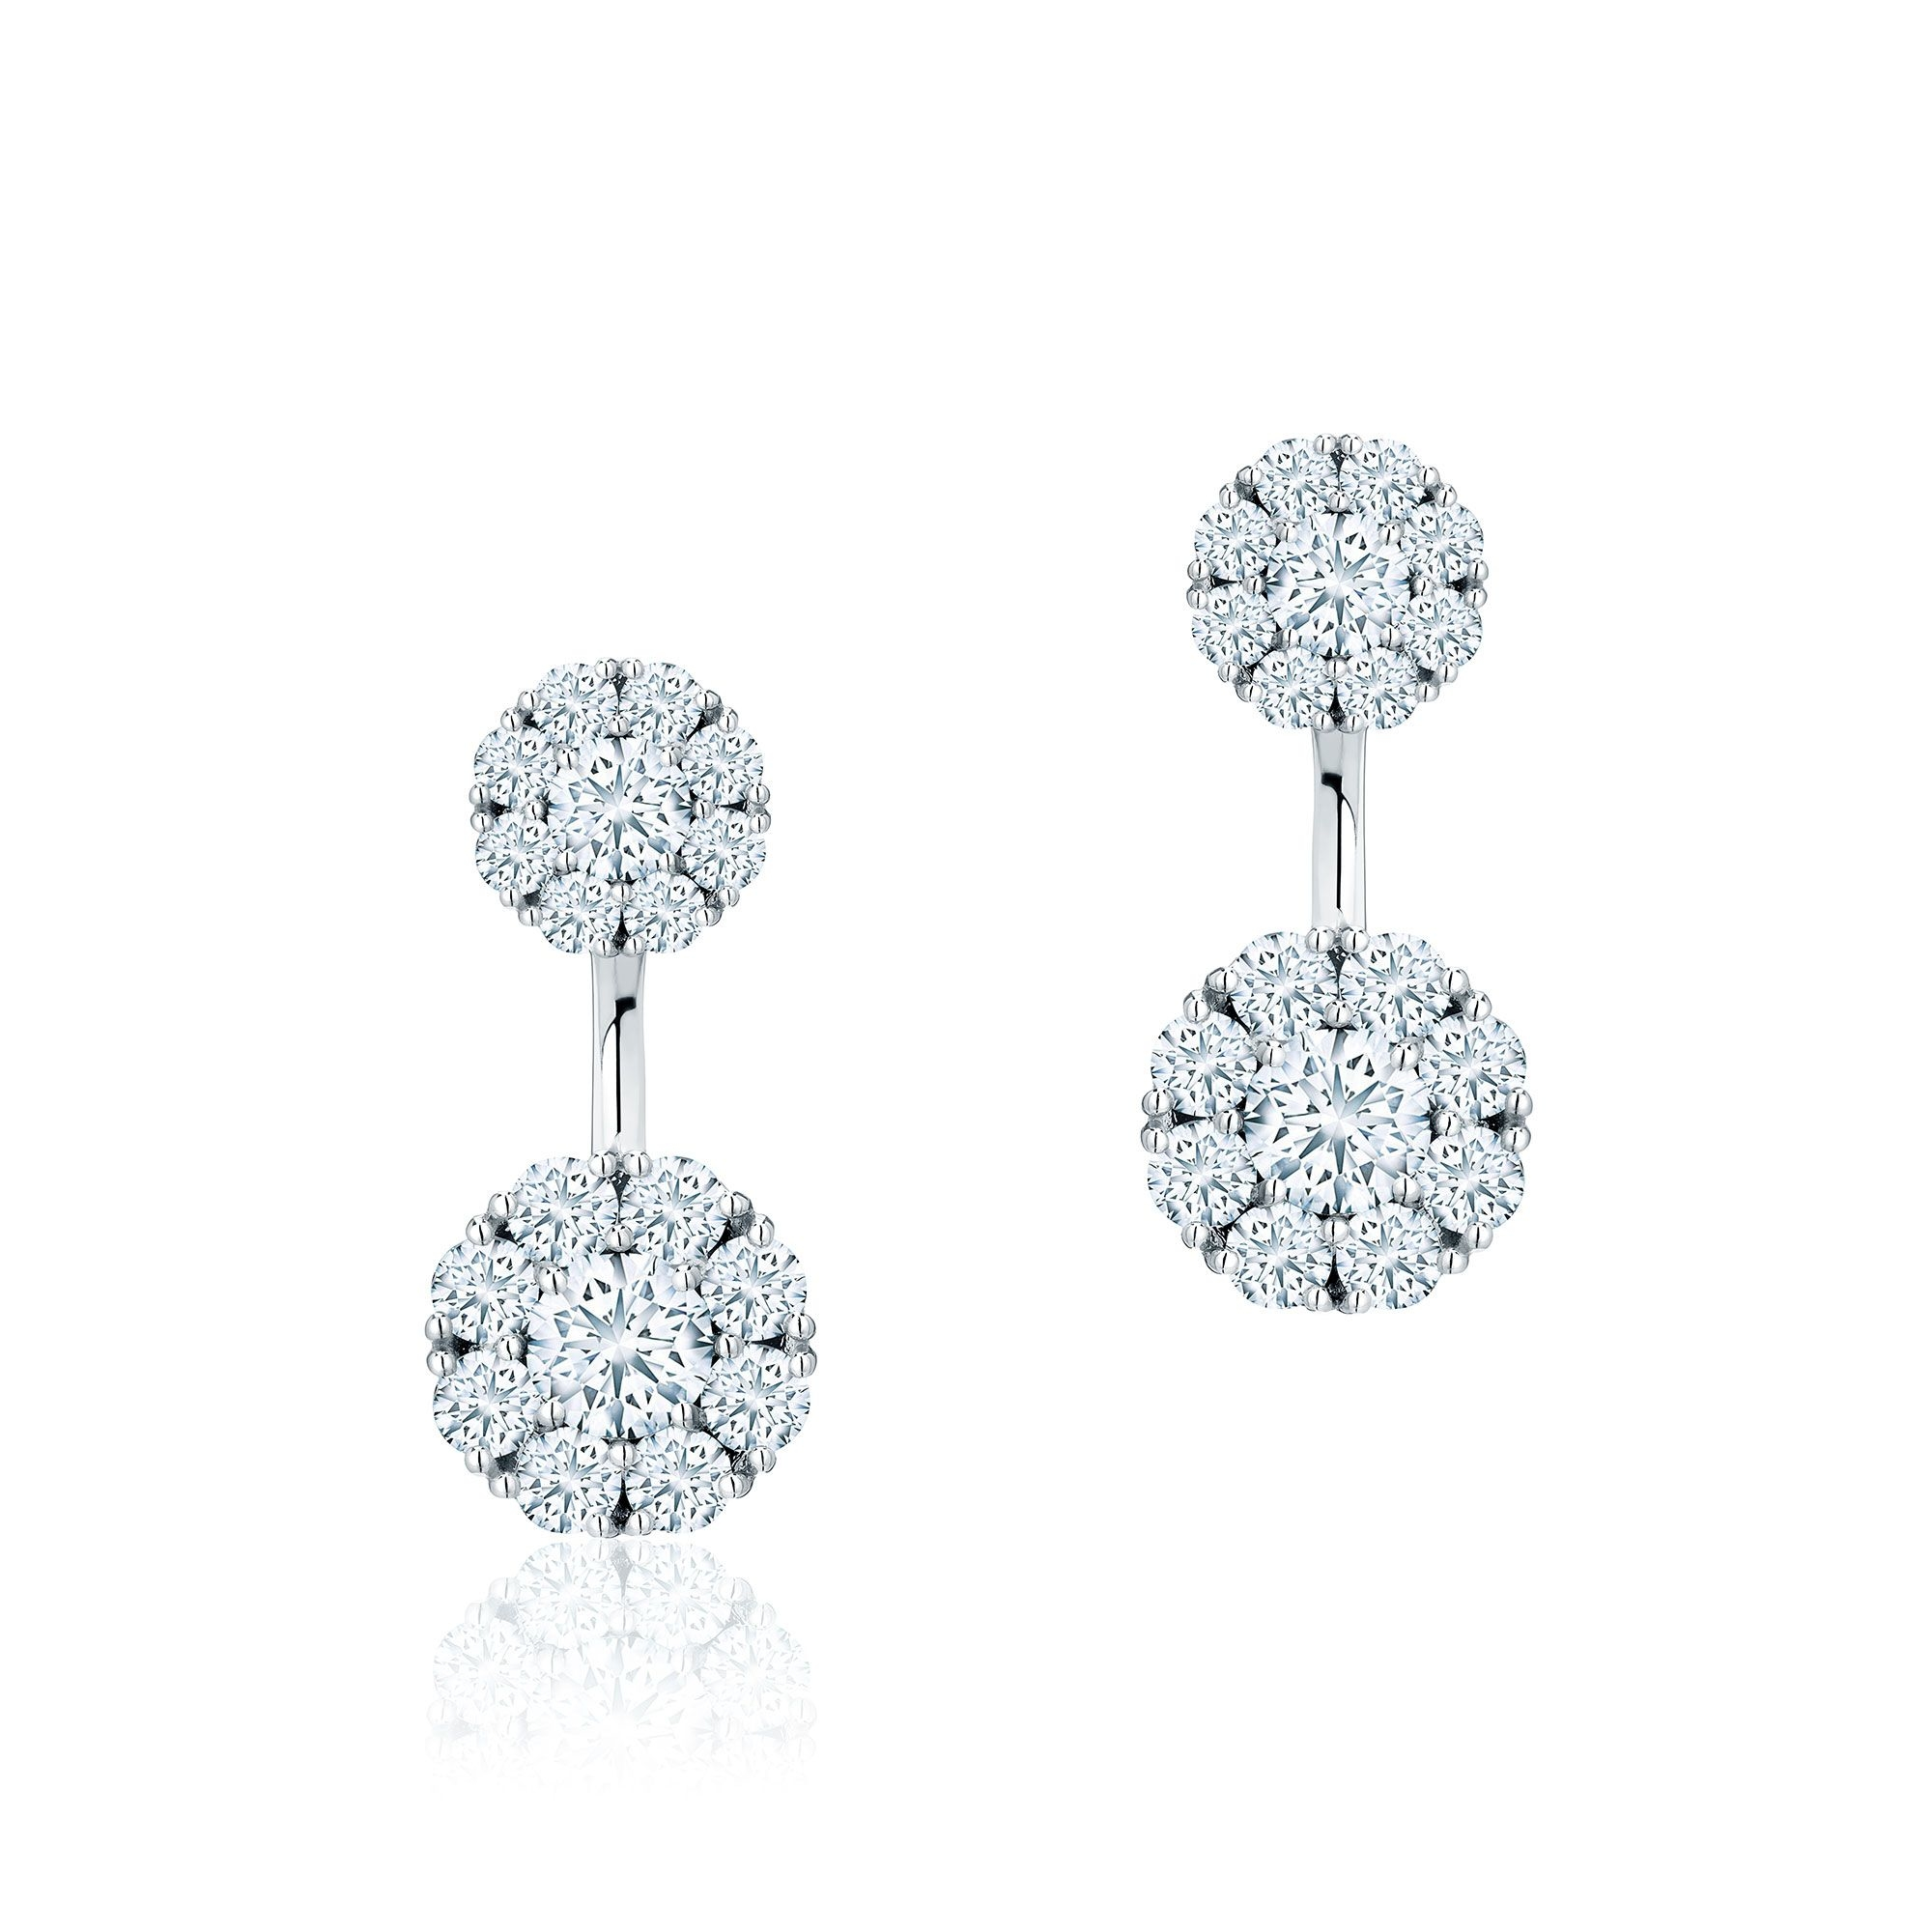 Birks 18K White Gold 1.39cts  Diamond Gold Earrings with Stones 450014408161